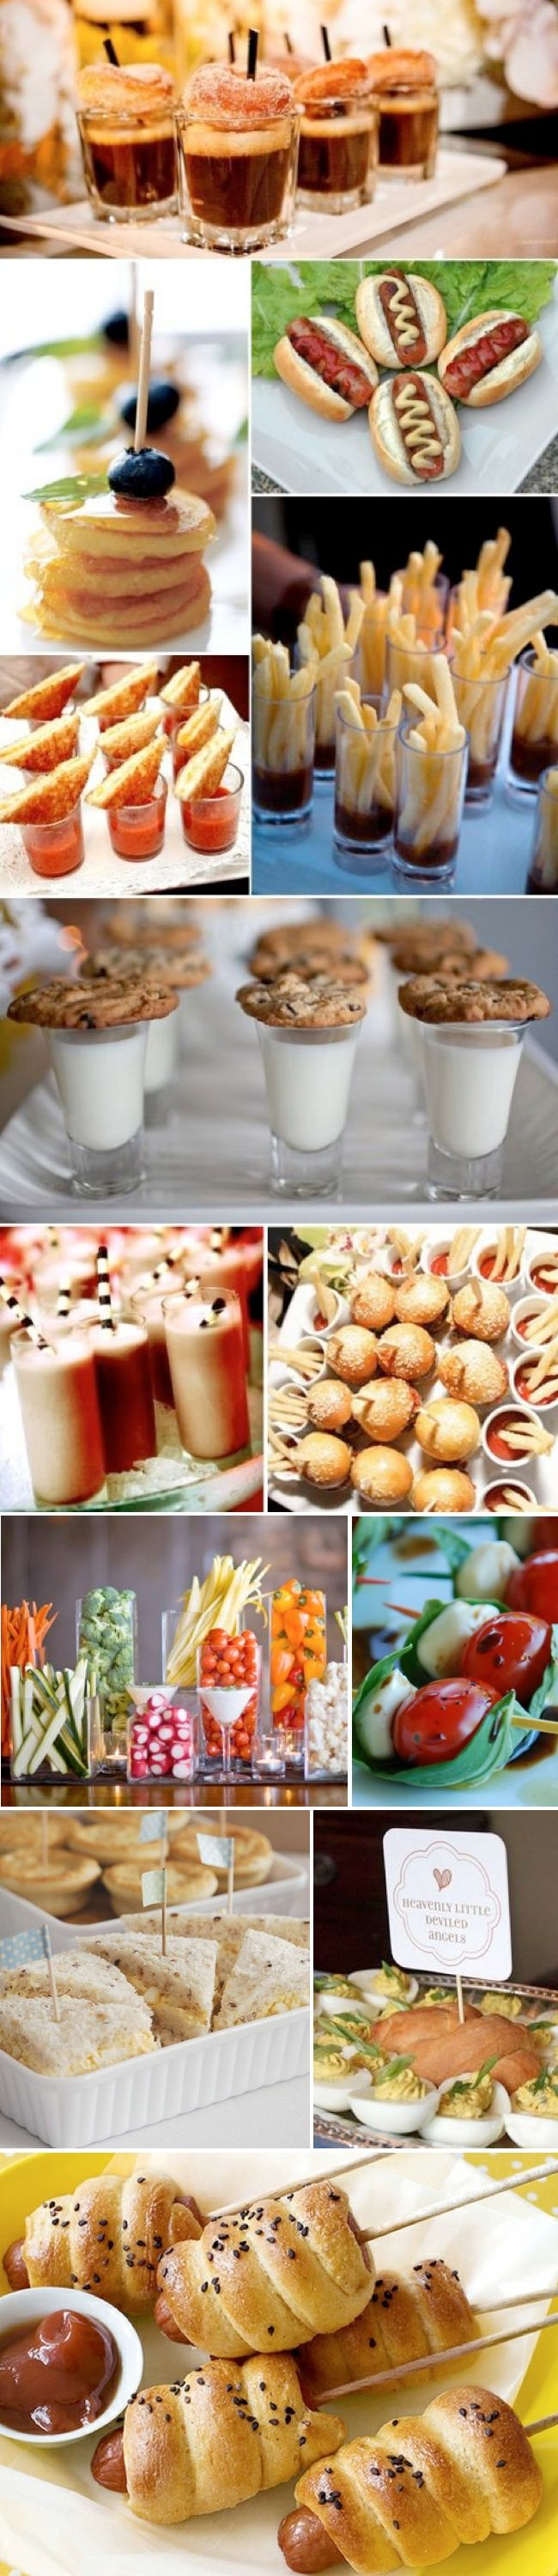 (presentation ideas) Finger foods {perfect for a party}. AMG tiny wiener dogs in tiny buns. Not in a dirty way. Or maybe it is.